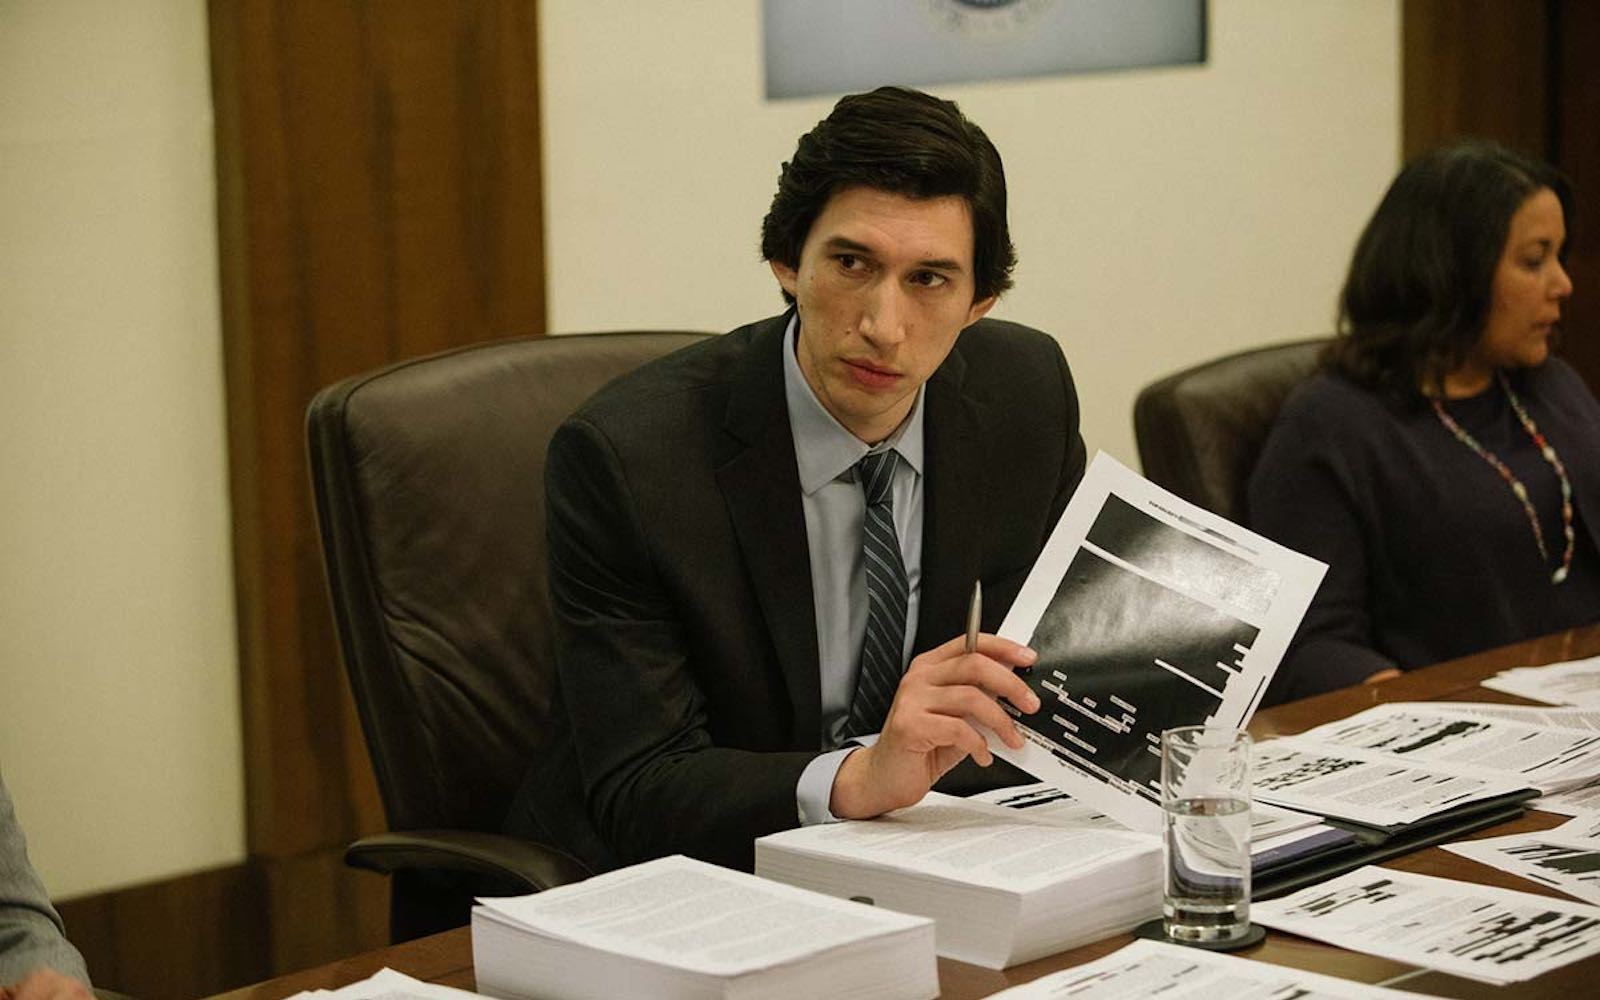 Adam Driver as Daniel Jones in 'The Report' (Photo courtesy of Sundance Institute)